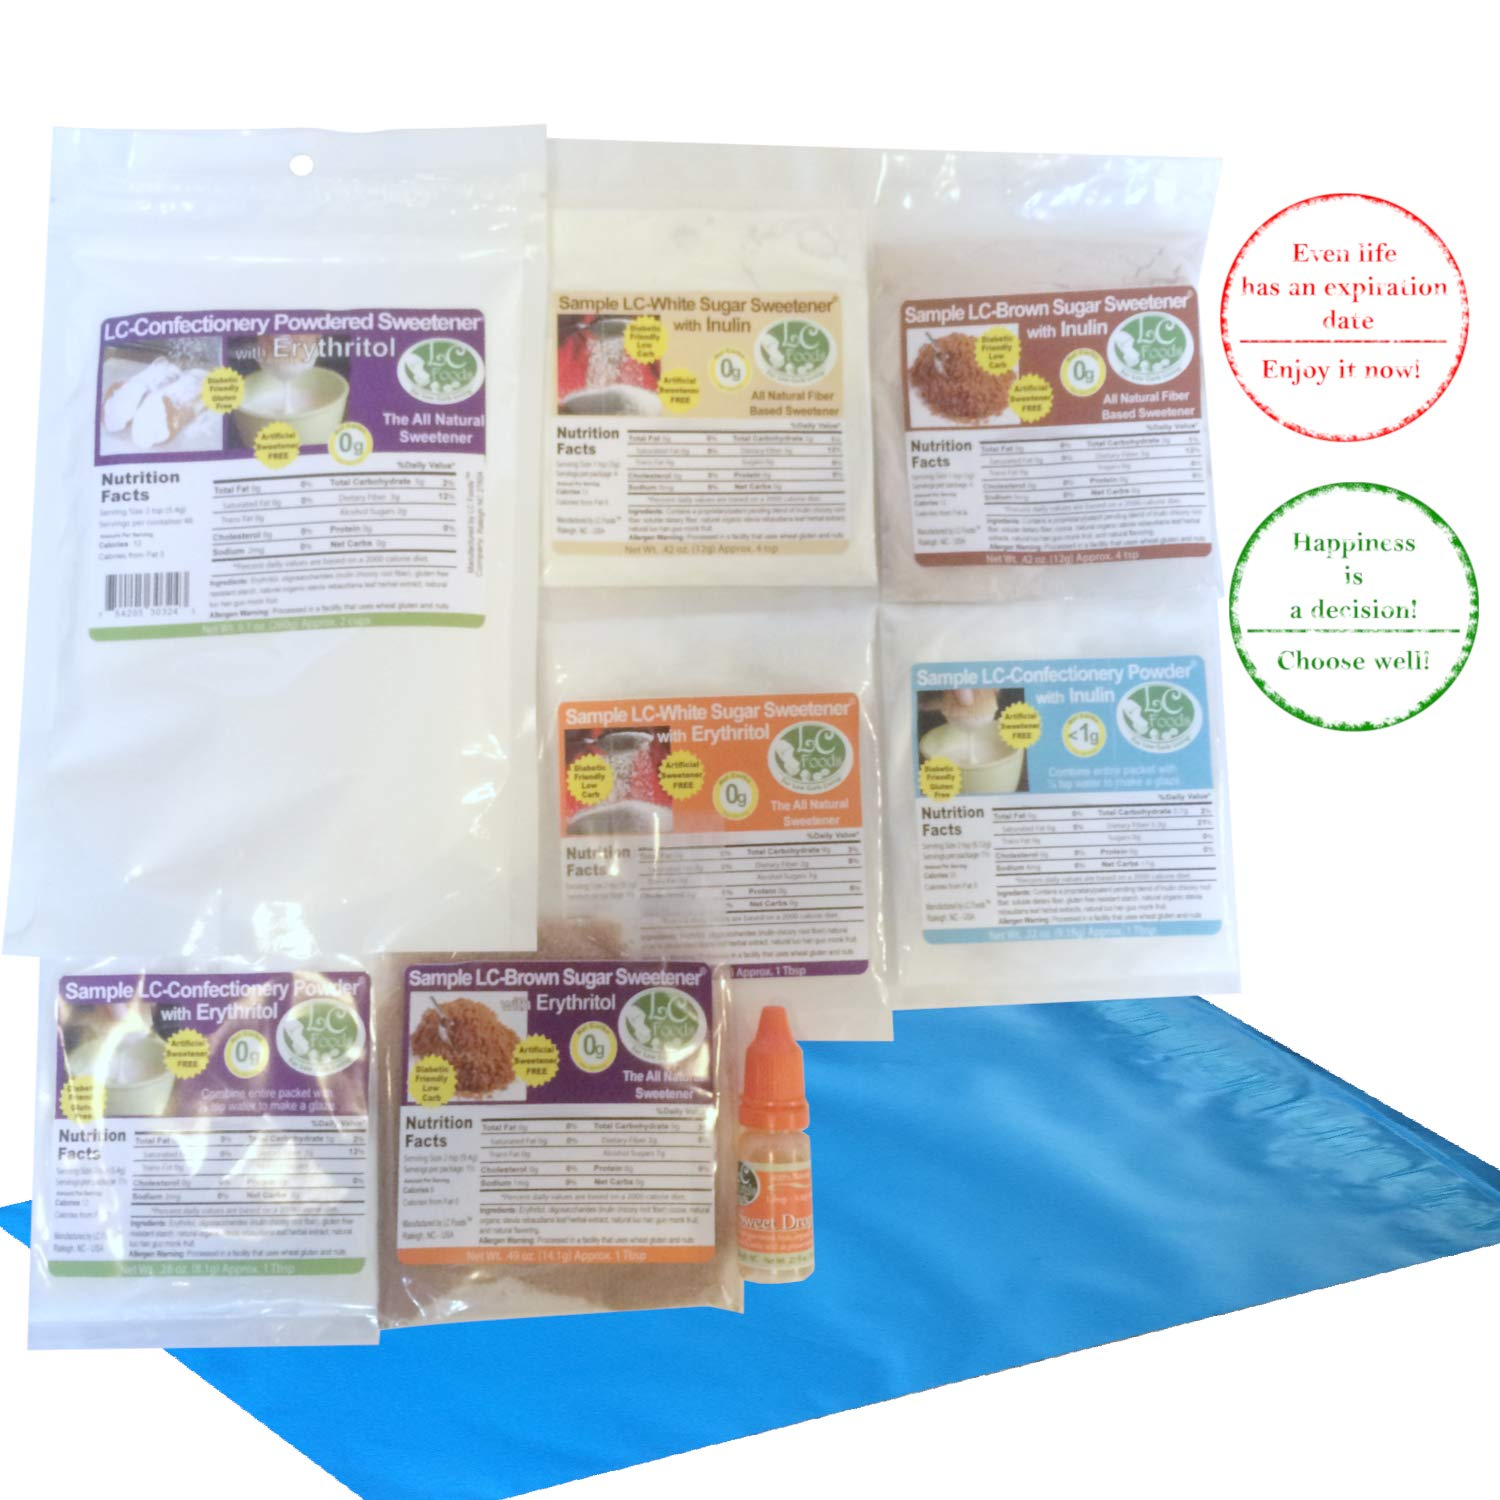 Keto Sugar Substitute, Confectionery Powdered Sweetener with Erythritol + Sweetener Blends Sampler by LC Foods, Low Carb Keto & Paleo Friendly